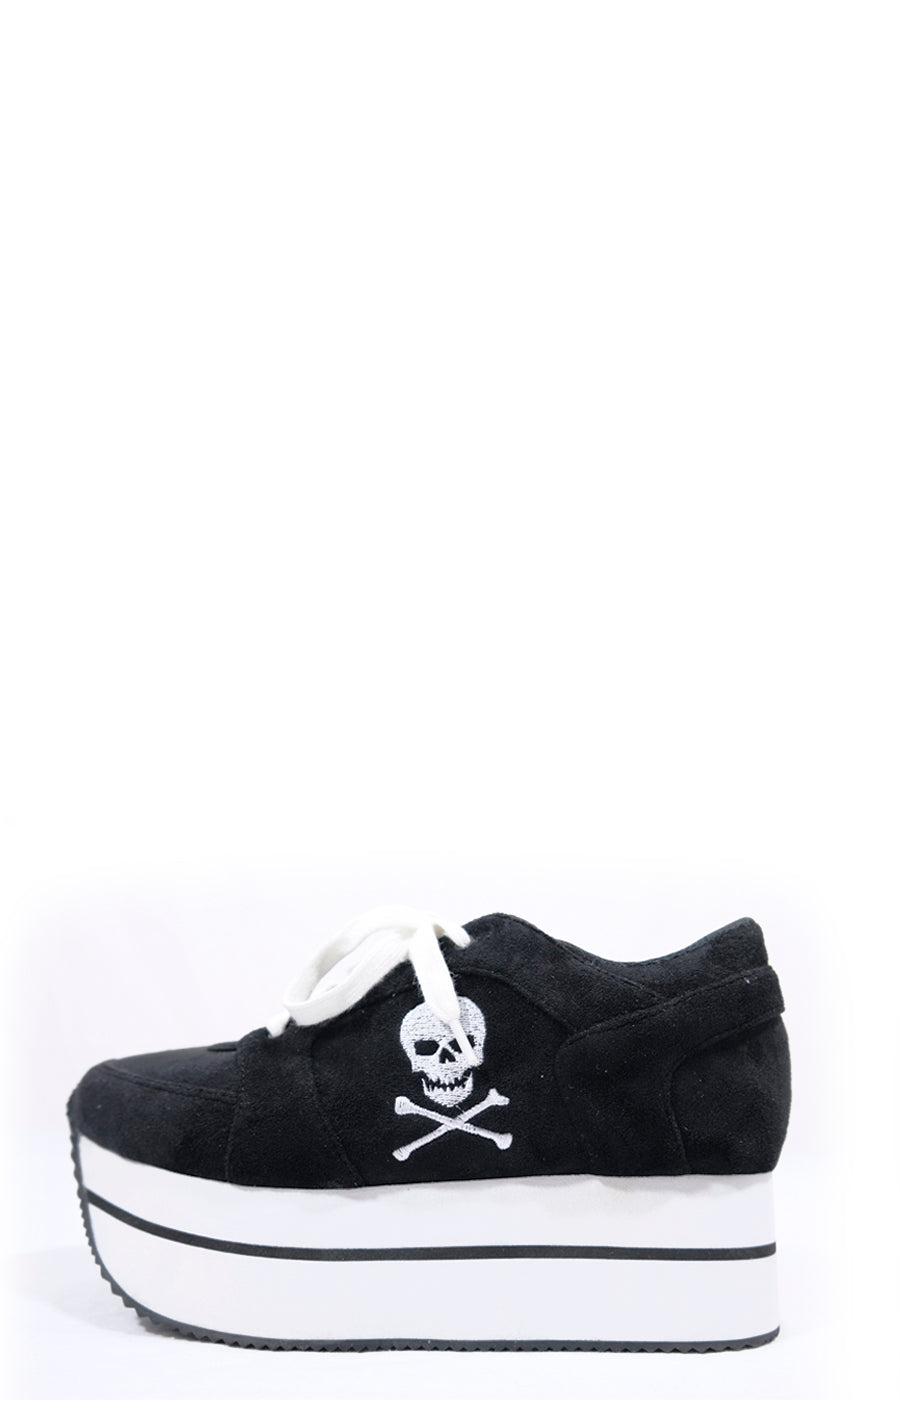 Super Skelly Suede Platform Sneaker